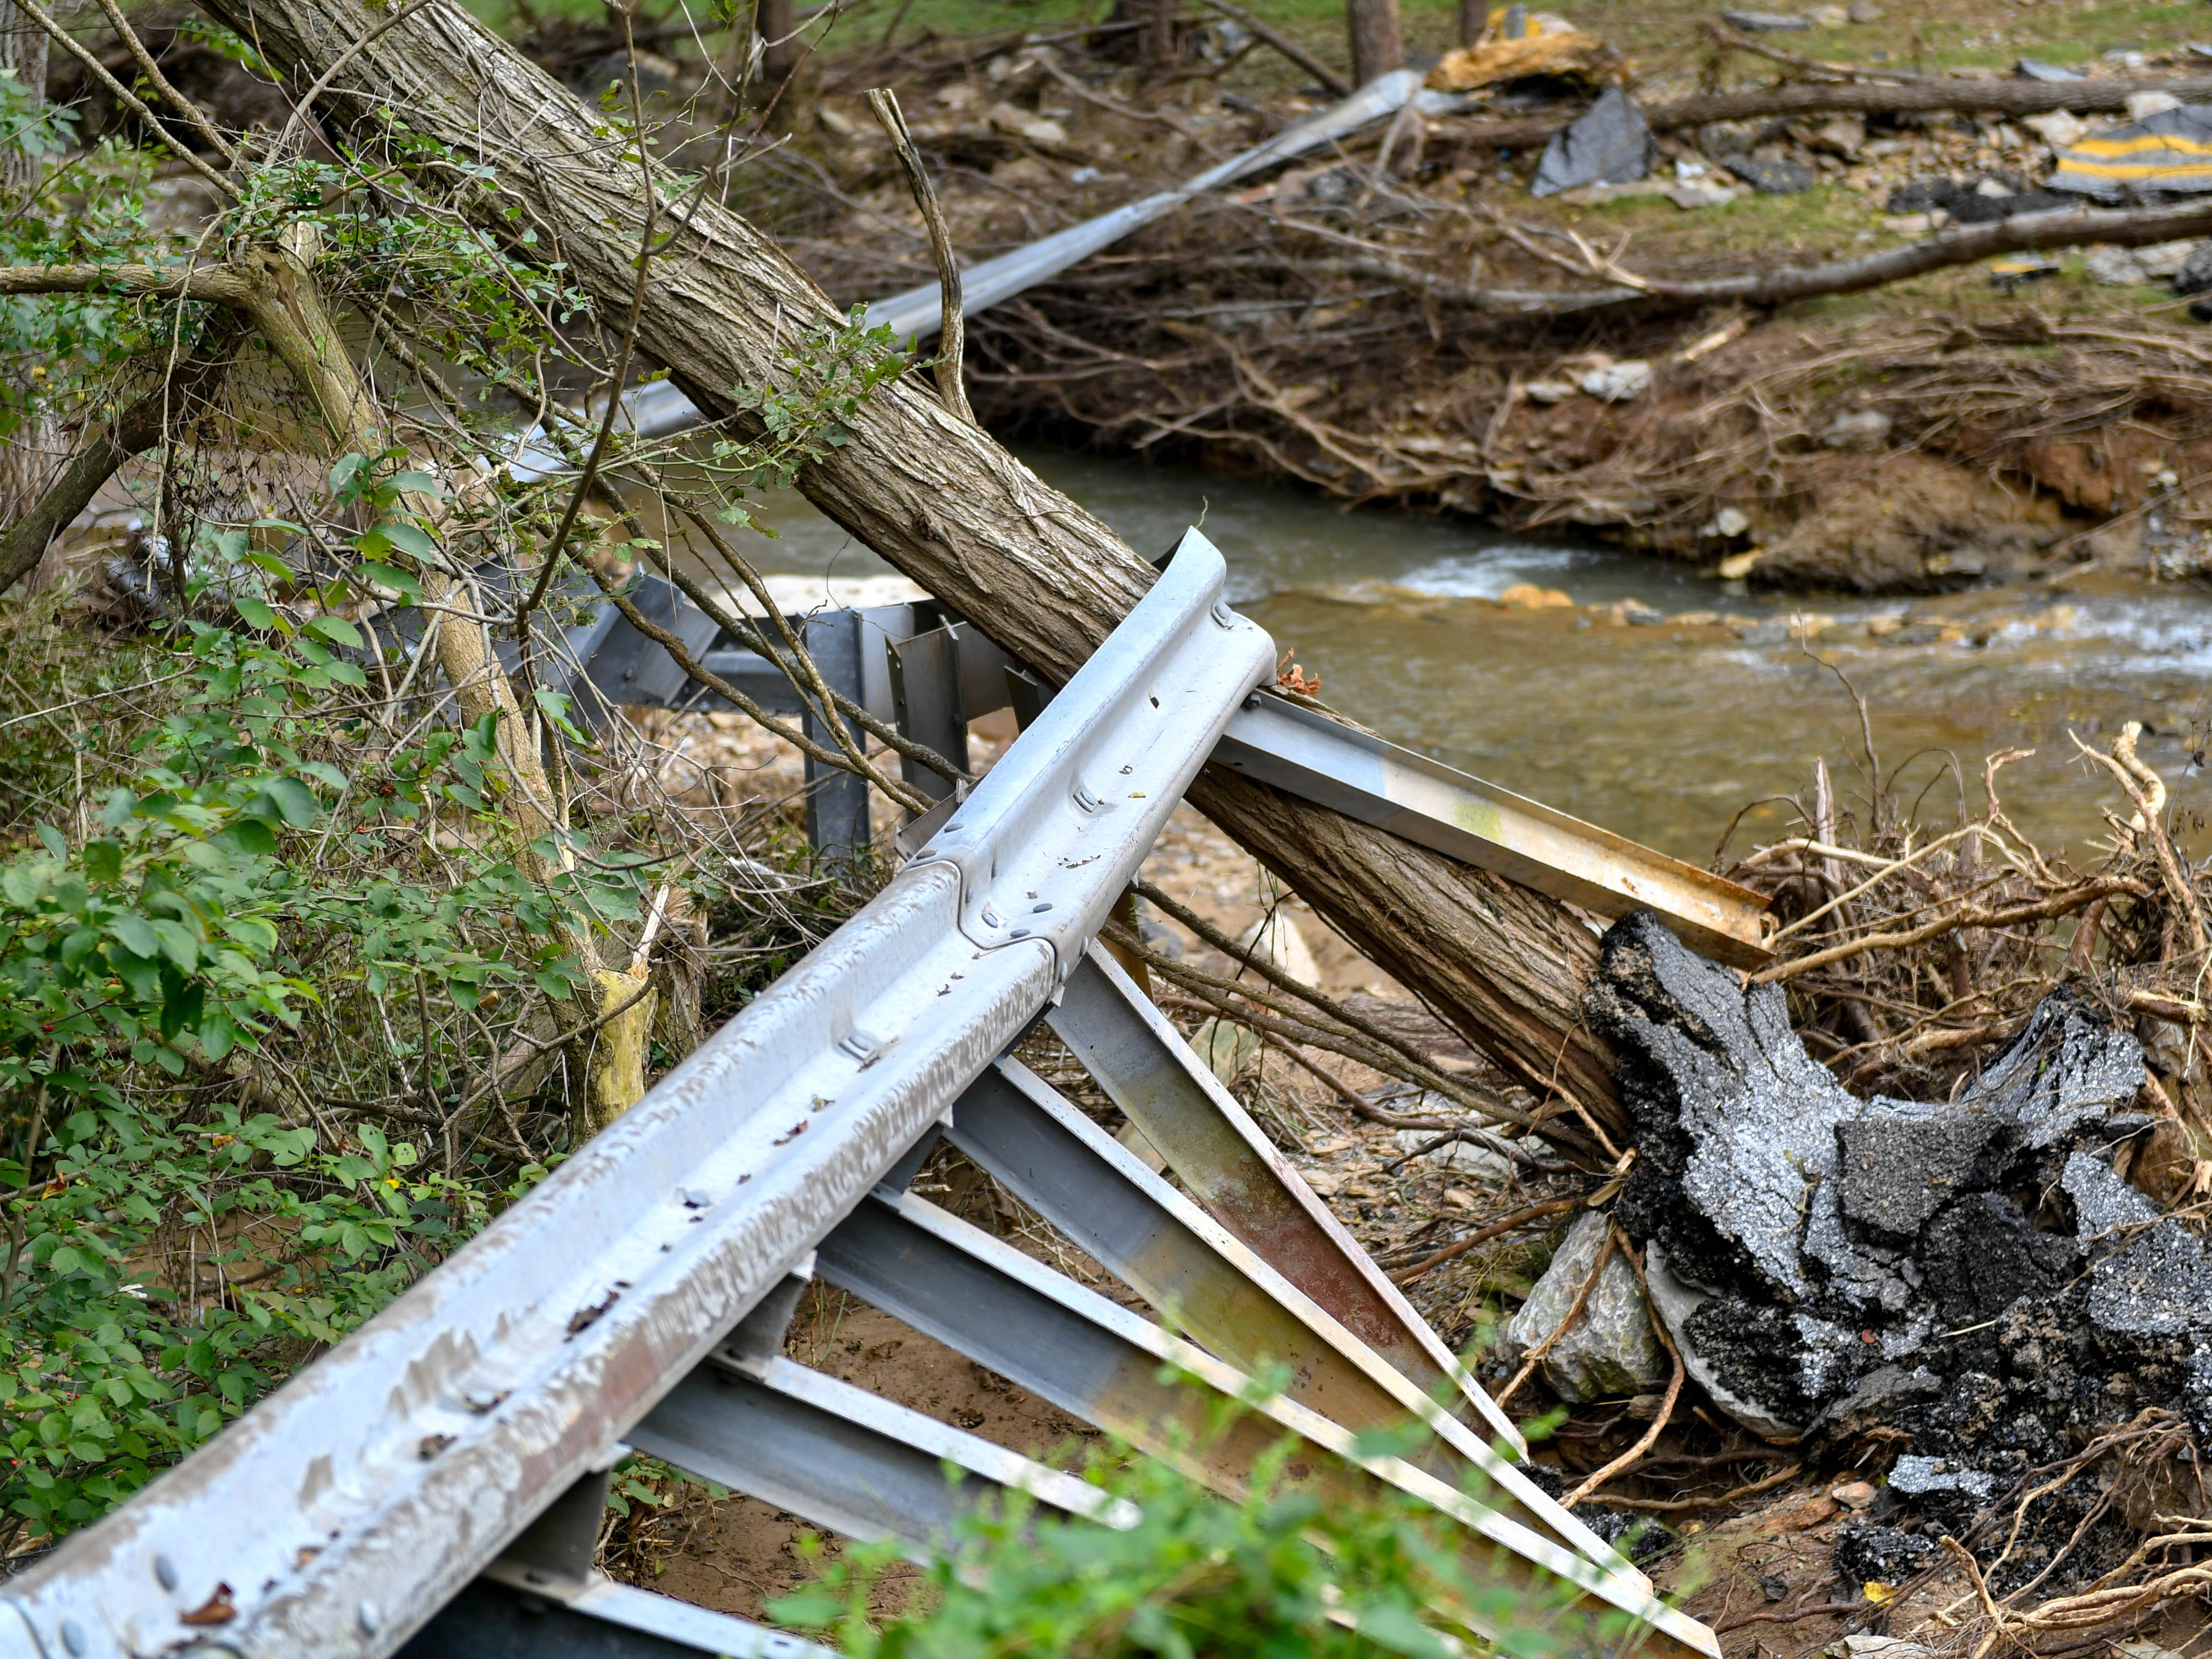 Destroyed guardrails were a common sight during Wagner's tour around York County, Thursday, September 6, 2018.